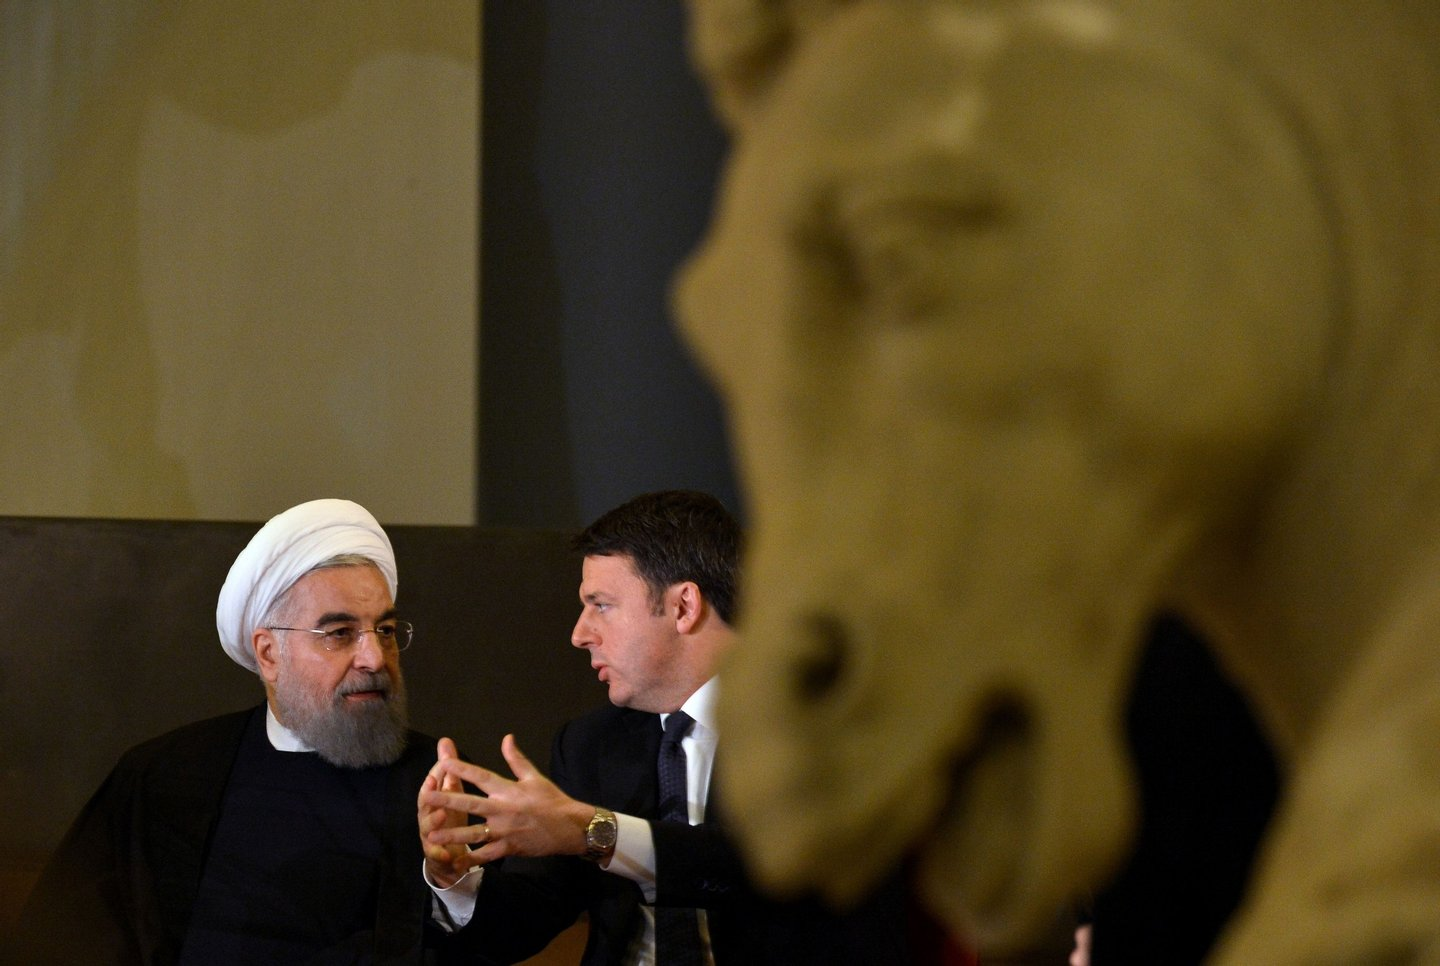 Italian Prime Minister Matteo Renzi (R) speaks with Iranian President Hassan Rouhani (L) during a meeting at the Capitol Hill in Rome on January 25, 2016. Iran's return to the international fold accelerated as Rouhani sealed multi-billion dollar deals with Italian companies keen to capitalise on the lifting of sanctions on the Islamic Republic. / AFP / TIZIANA FABI (Photo credit should read TIZIANA FABI/AFP/Getty Images)